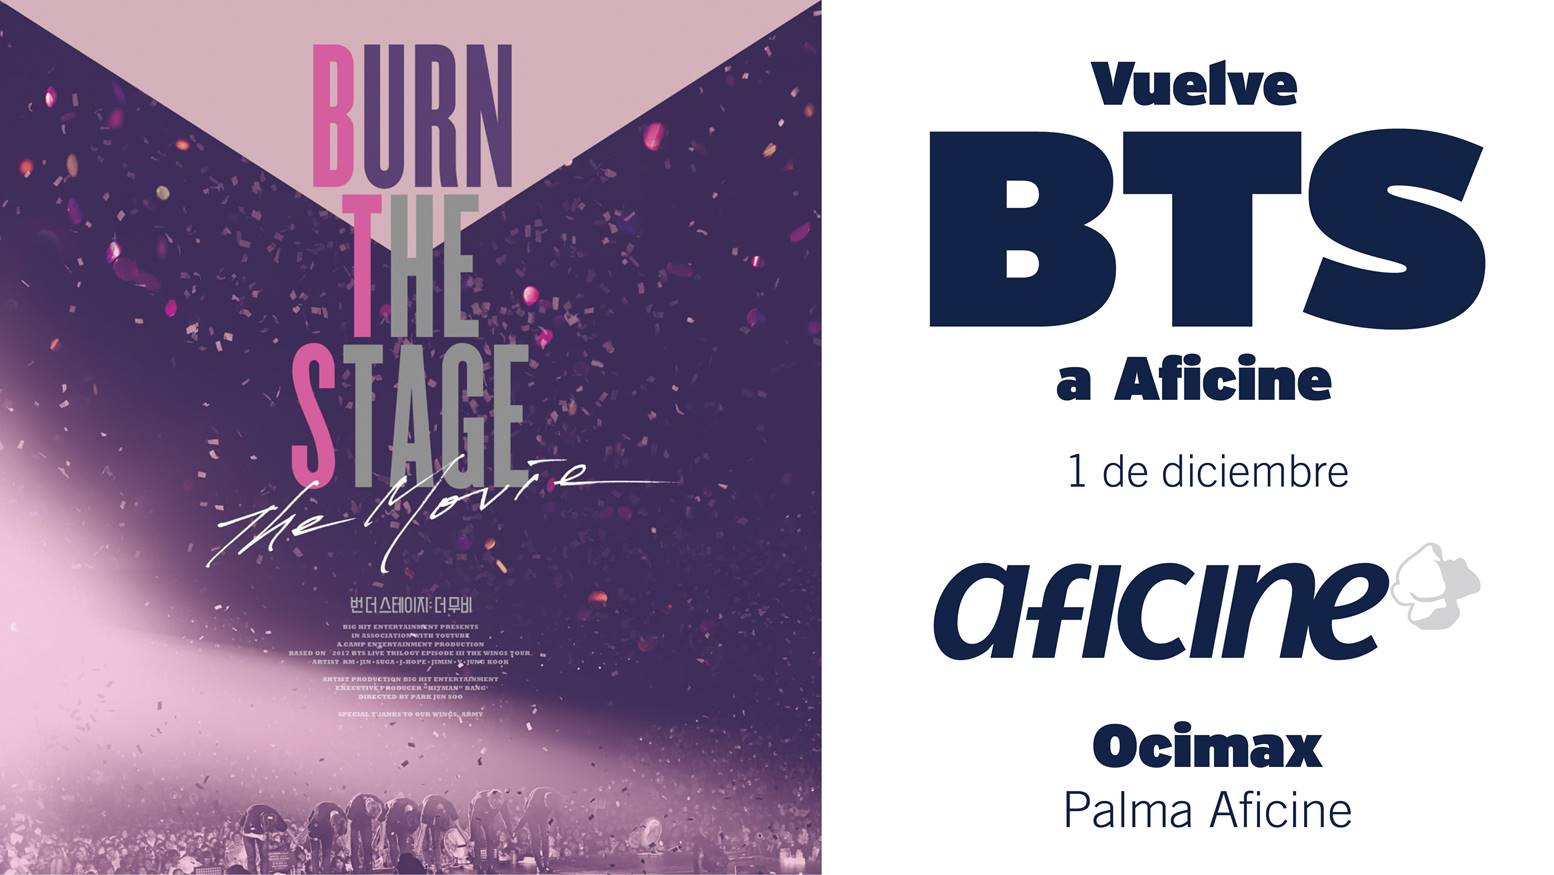 Tornen a Aficine!!<br>Burn The Stage The